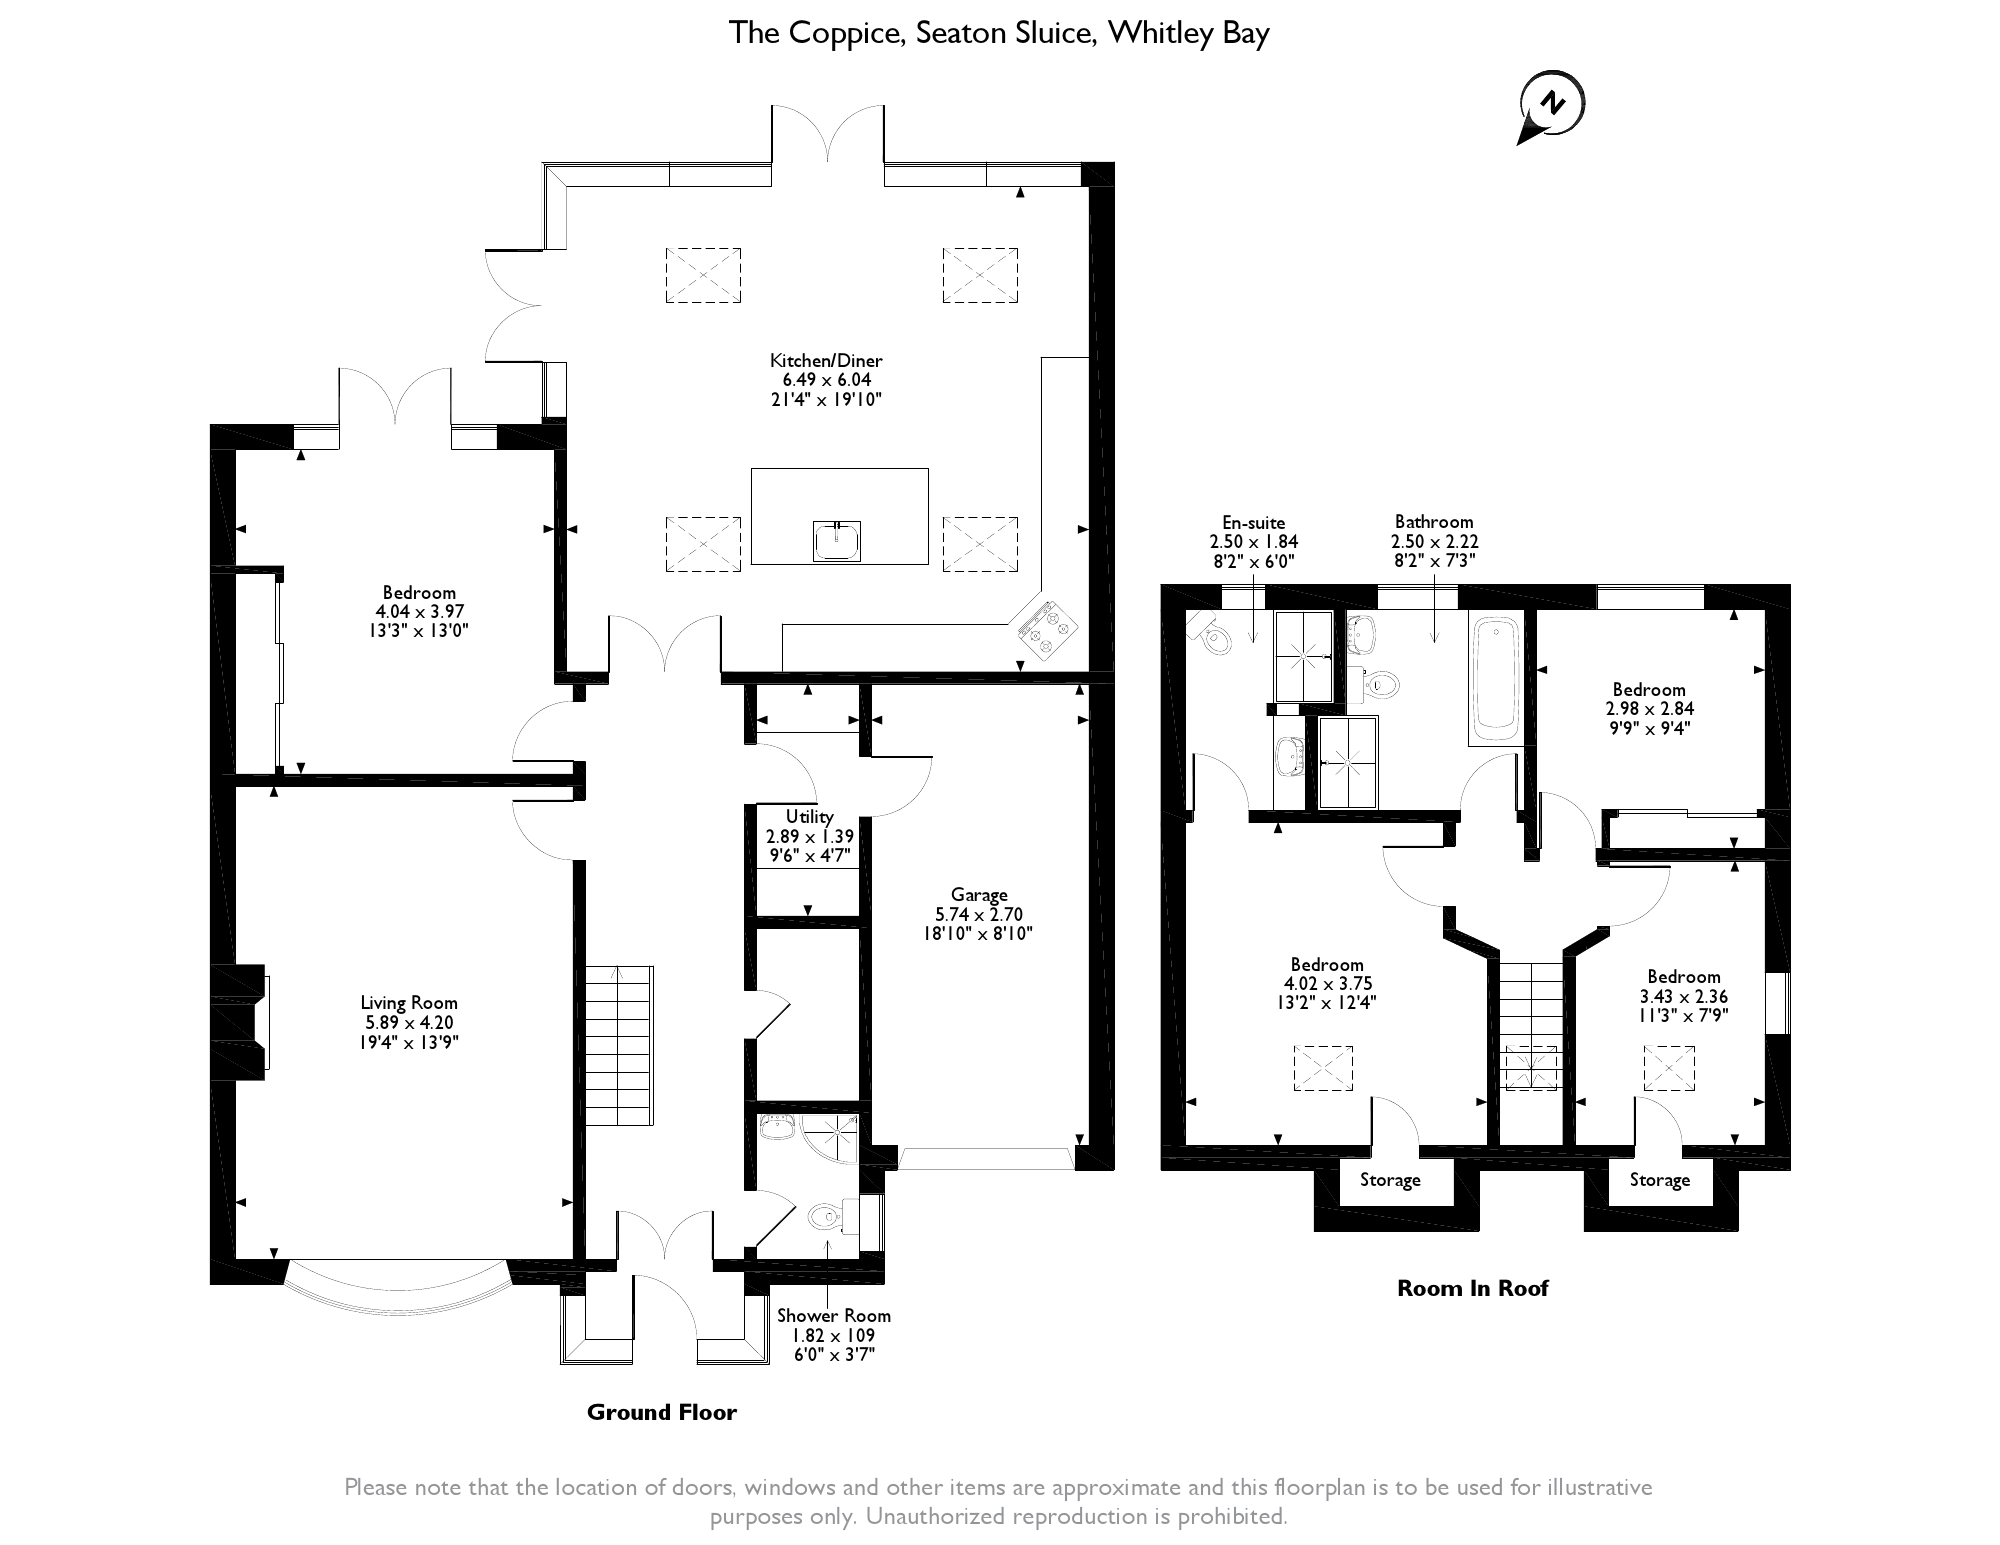 The Coppice, Seaton Sluice, Whitley Bay, NE26 floor plan